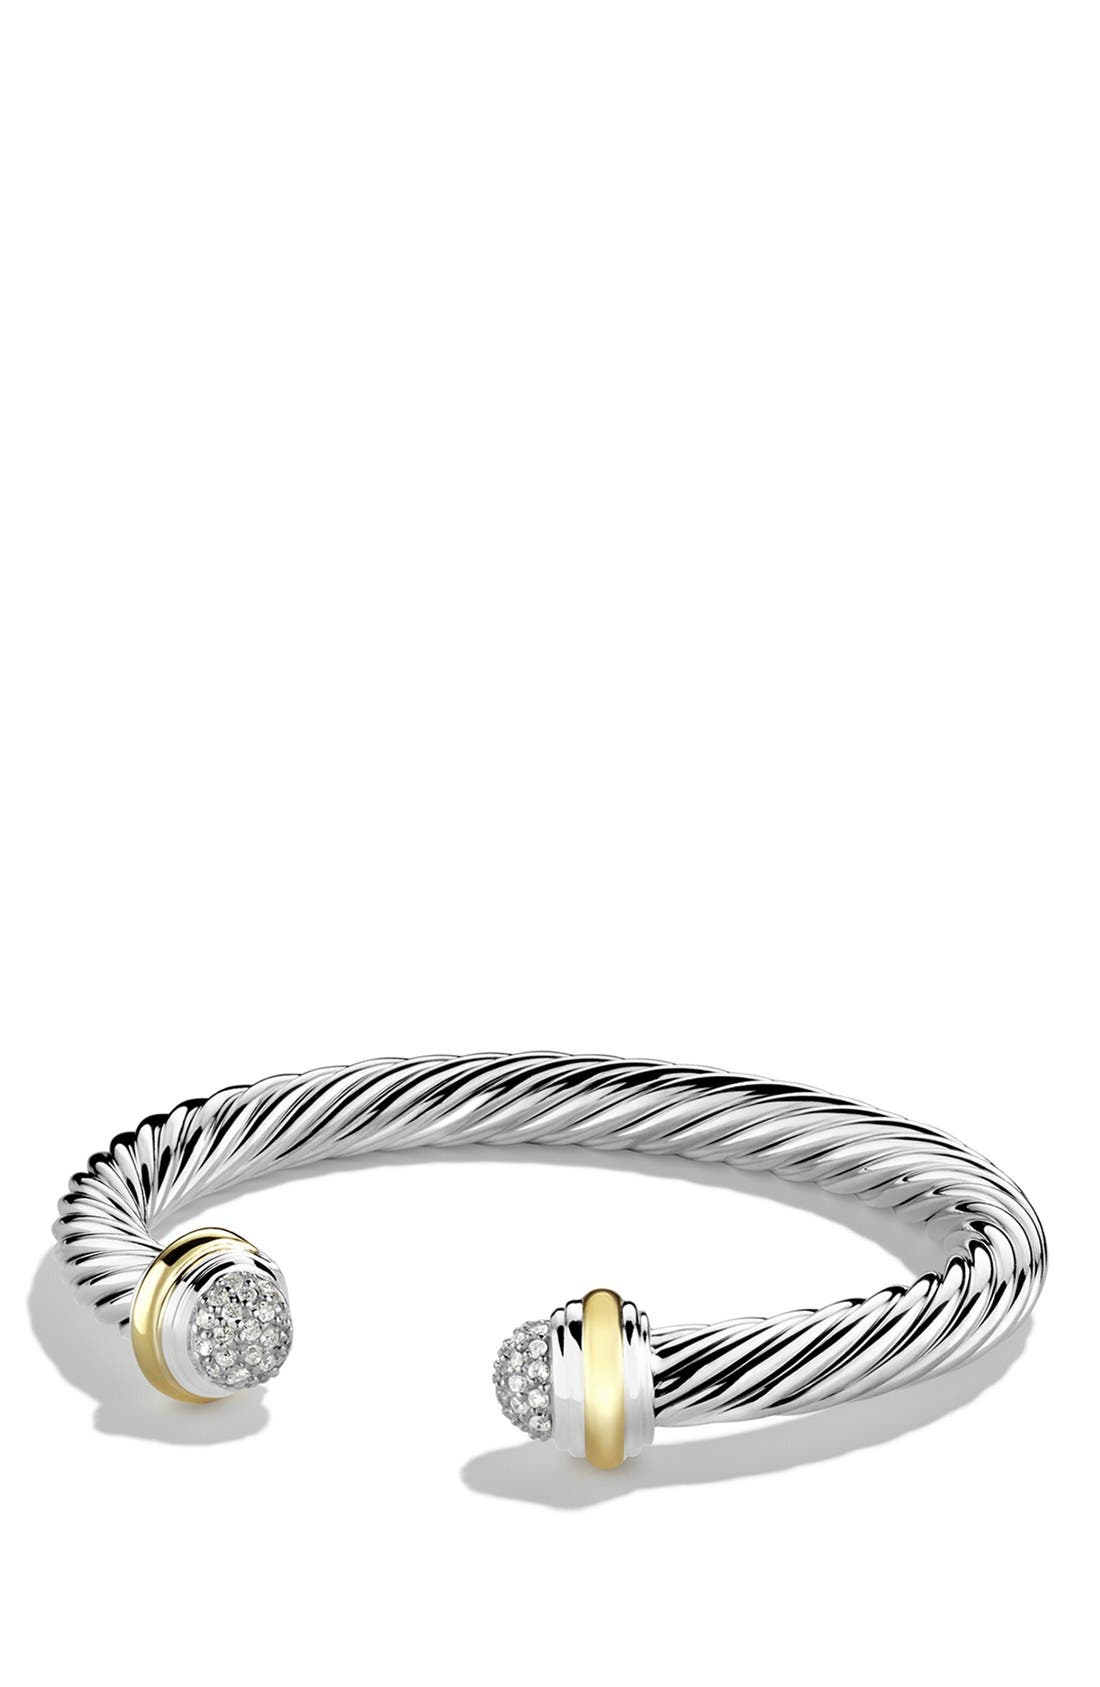 Cable Classics Bracelet with Diamonds and 18K Gold, 7mm,                             Main thumbnail 1, color,                             Diamond